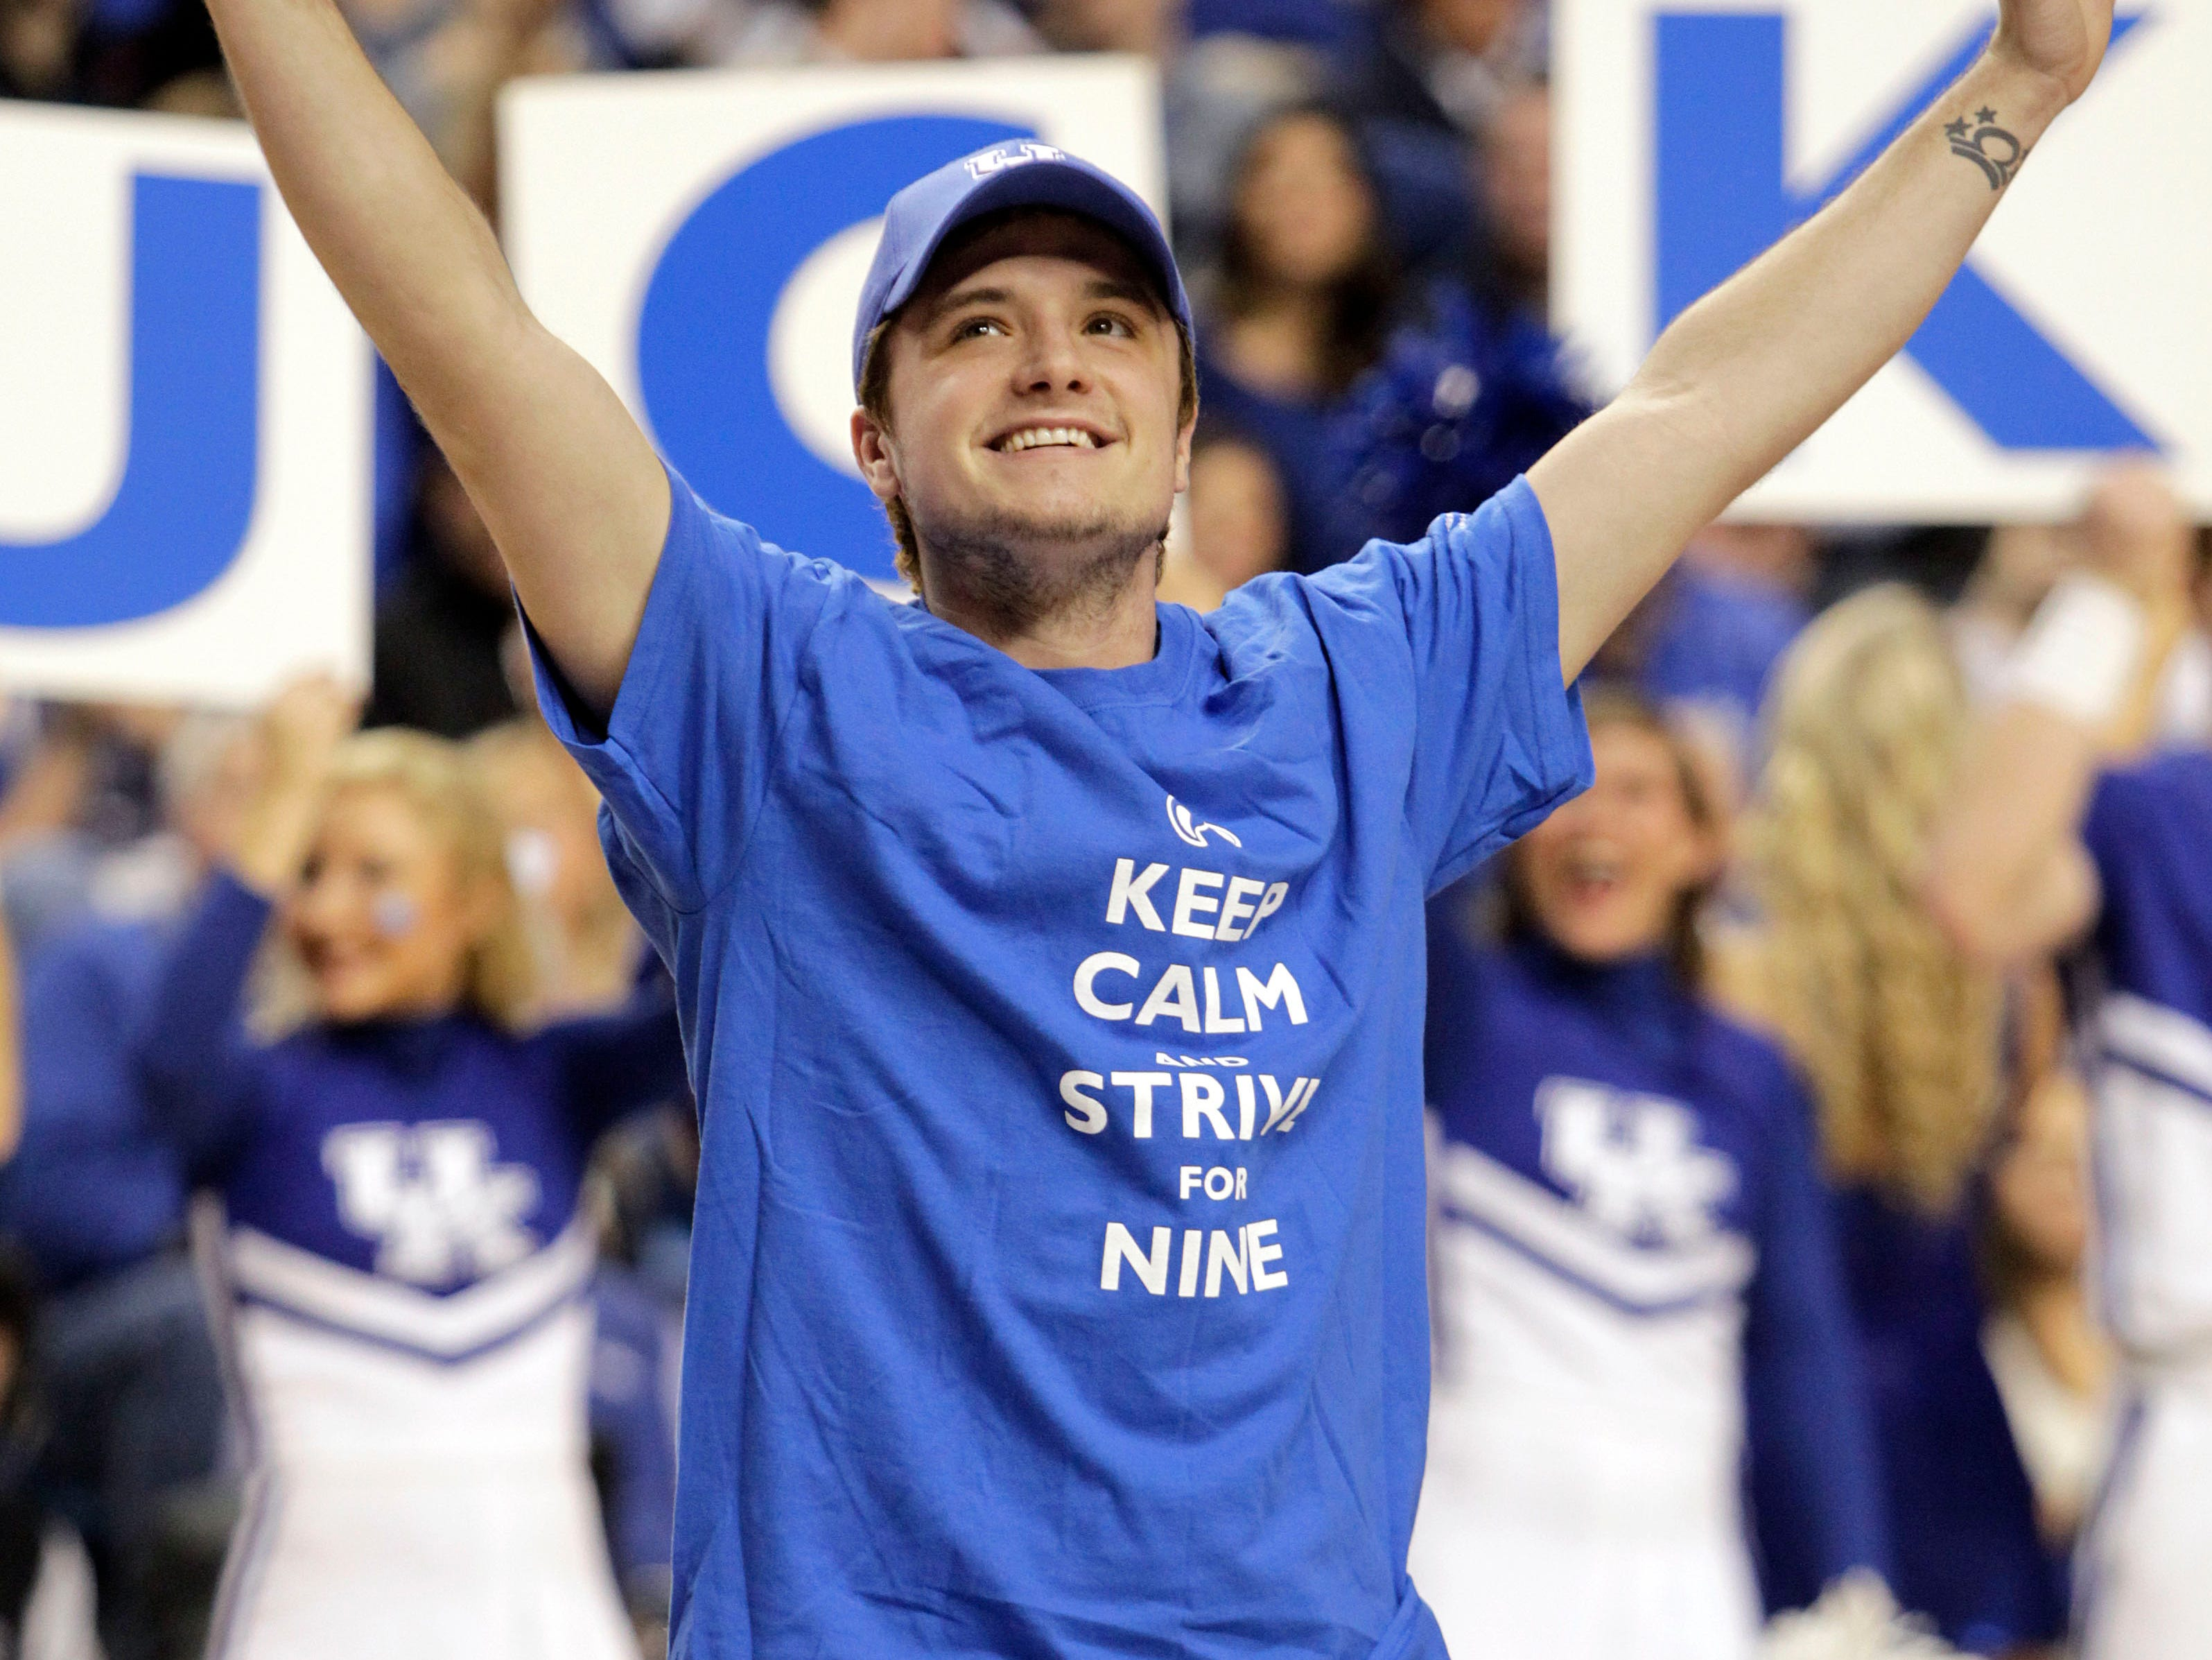 """Josh Hutcherson, Kentucky native and one of the stars of the film """"The Hunger Games,"""" salutes the crowd during the second half of an NCAA college basketball game between Kentucky and  Louisville, Saturday, Dec. 28, 2013, in Lexington, Ky. Kentucky won 73-66. (AP Photo/James Crisp) ORG XMIT: KYJC110"""